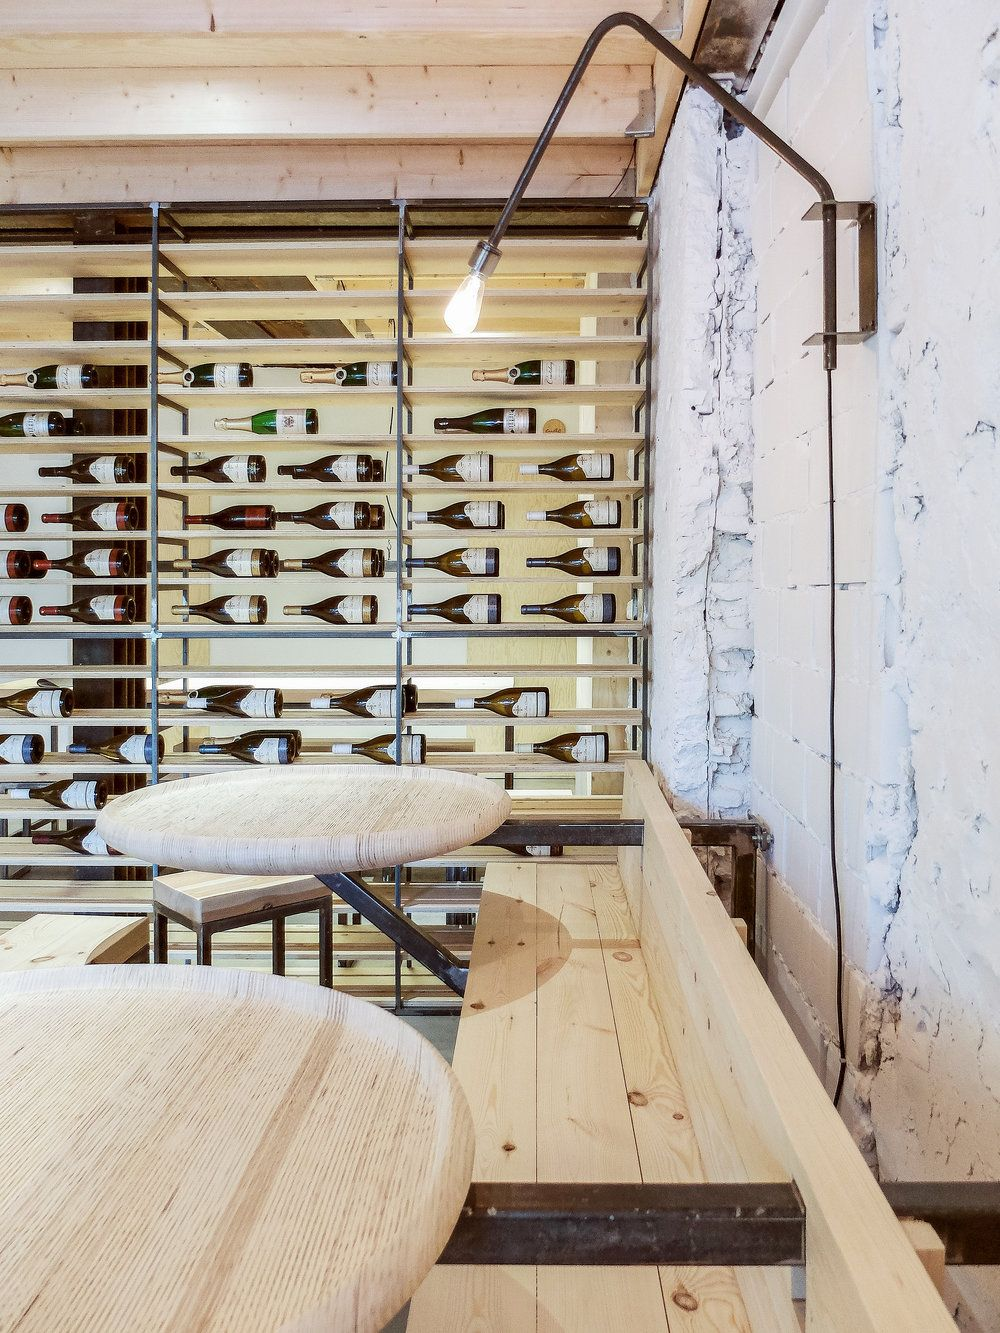 klein agency - wine bar antwerp | public spaces interior | Pinterest